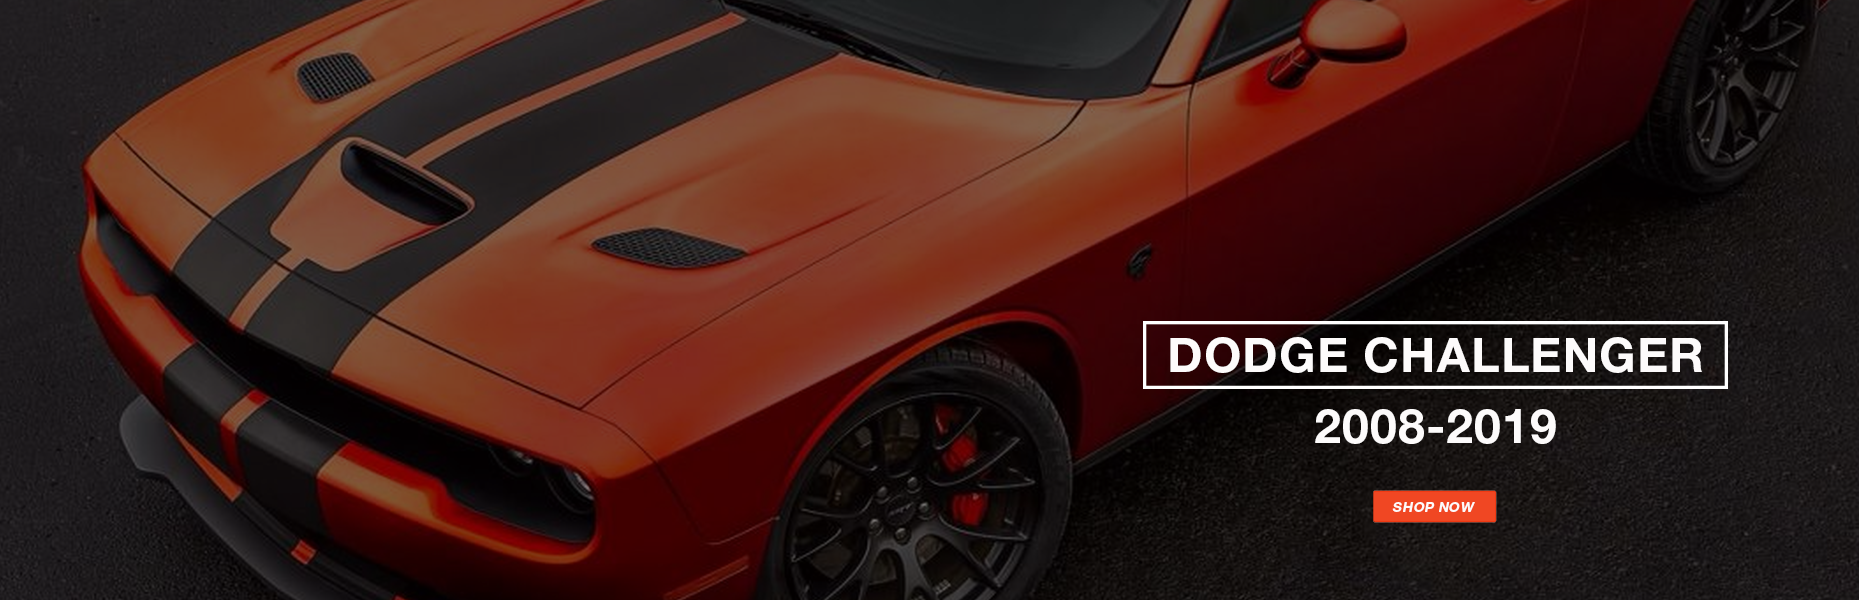 2015-2019 Dodge Challenger Stripes, Dodge Challenger Decals, Dodge Challenger Vinyl Graphics